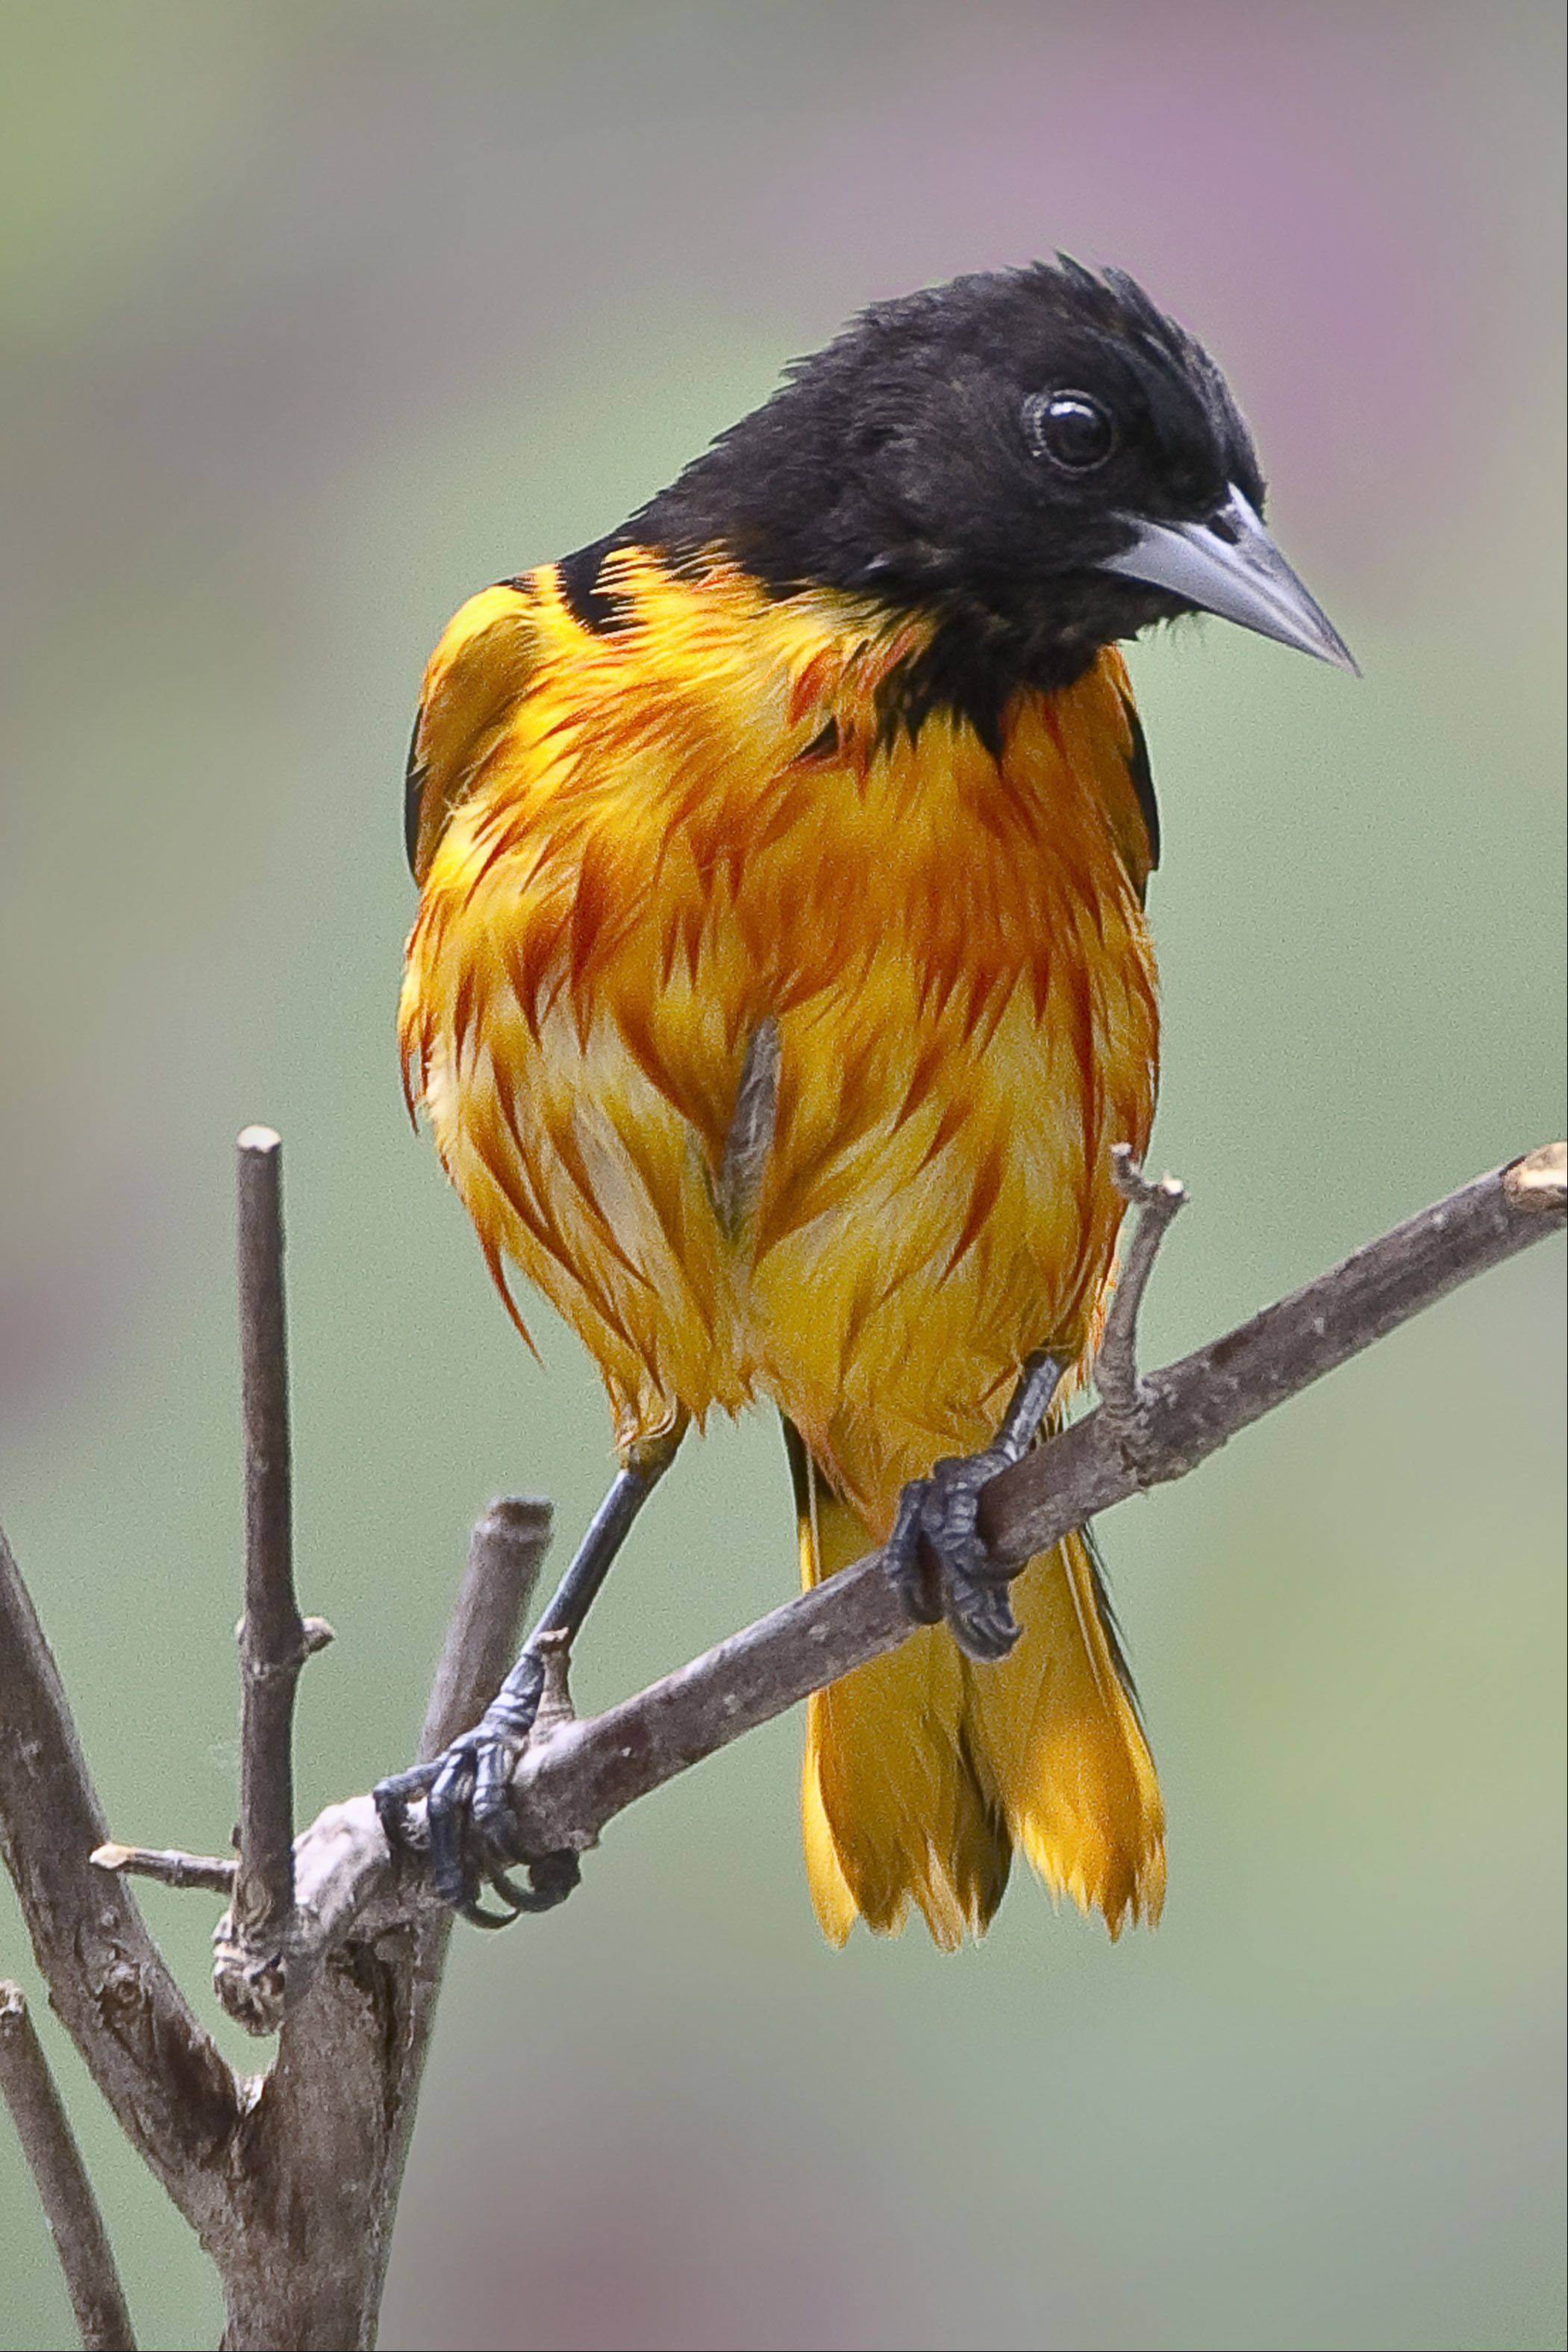 Of all the birds that come around, the Baltimore oriole has to take the grand prize for color.